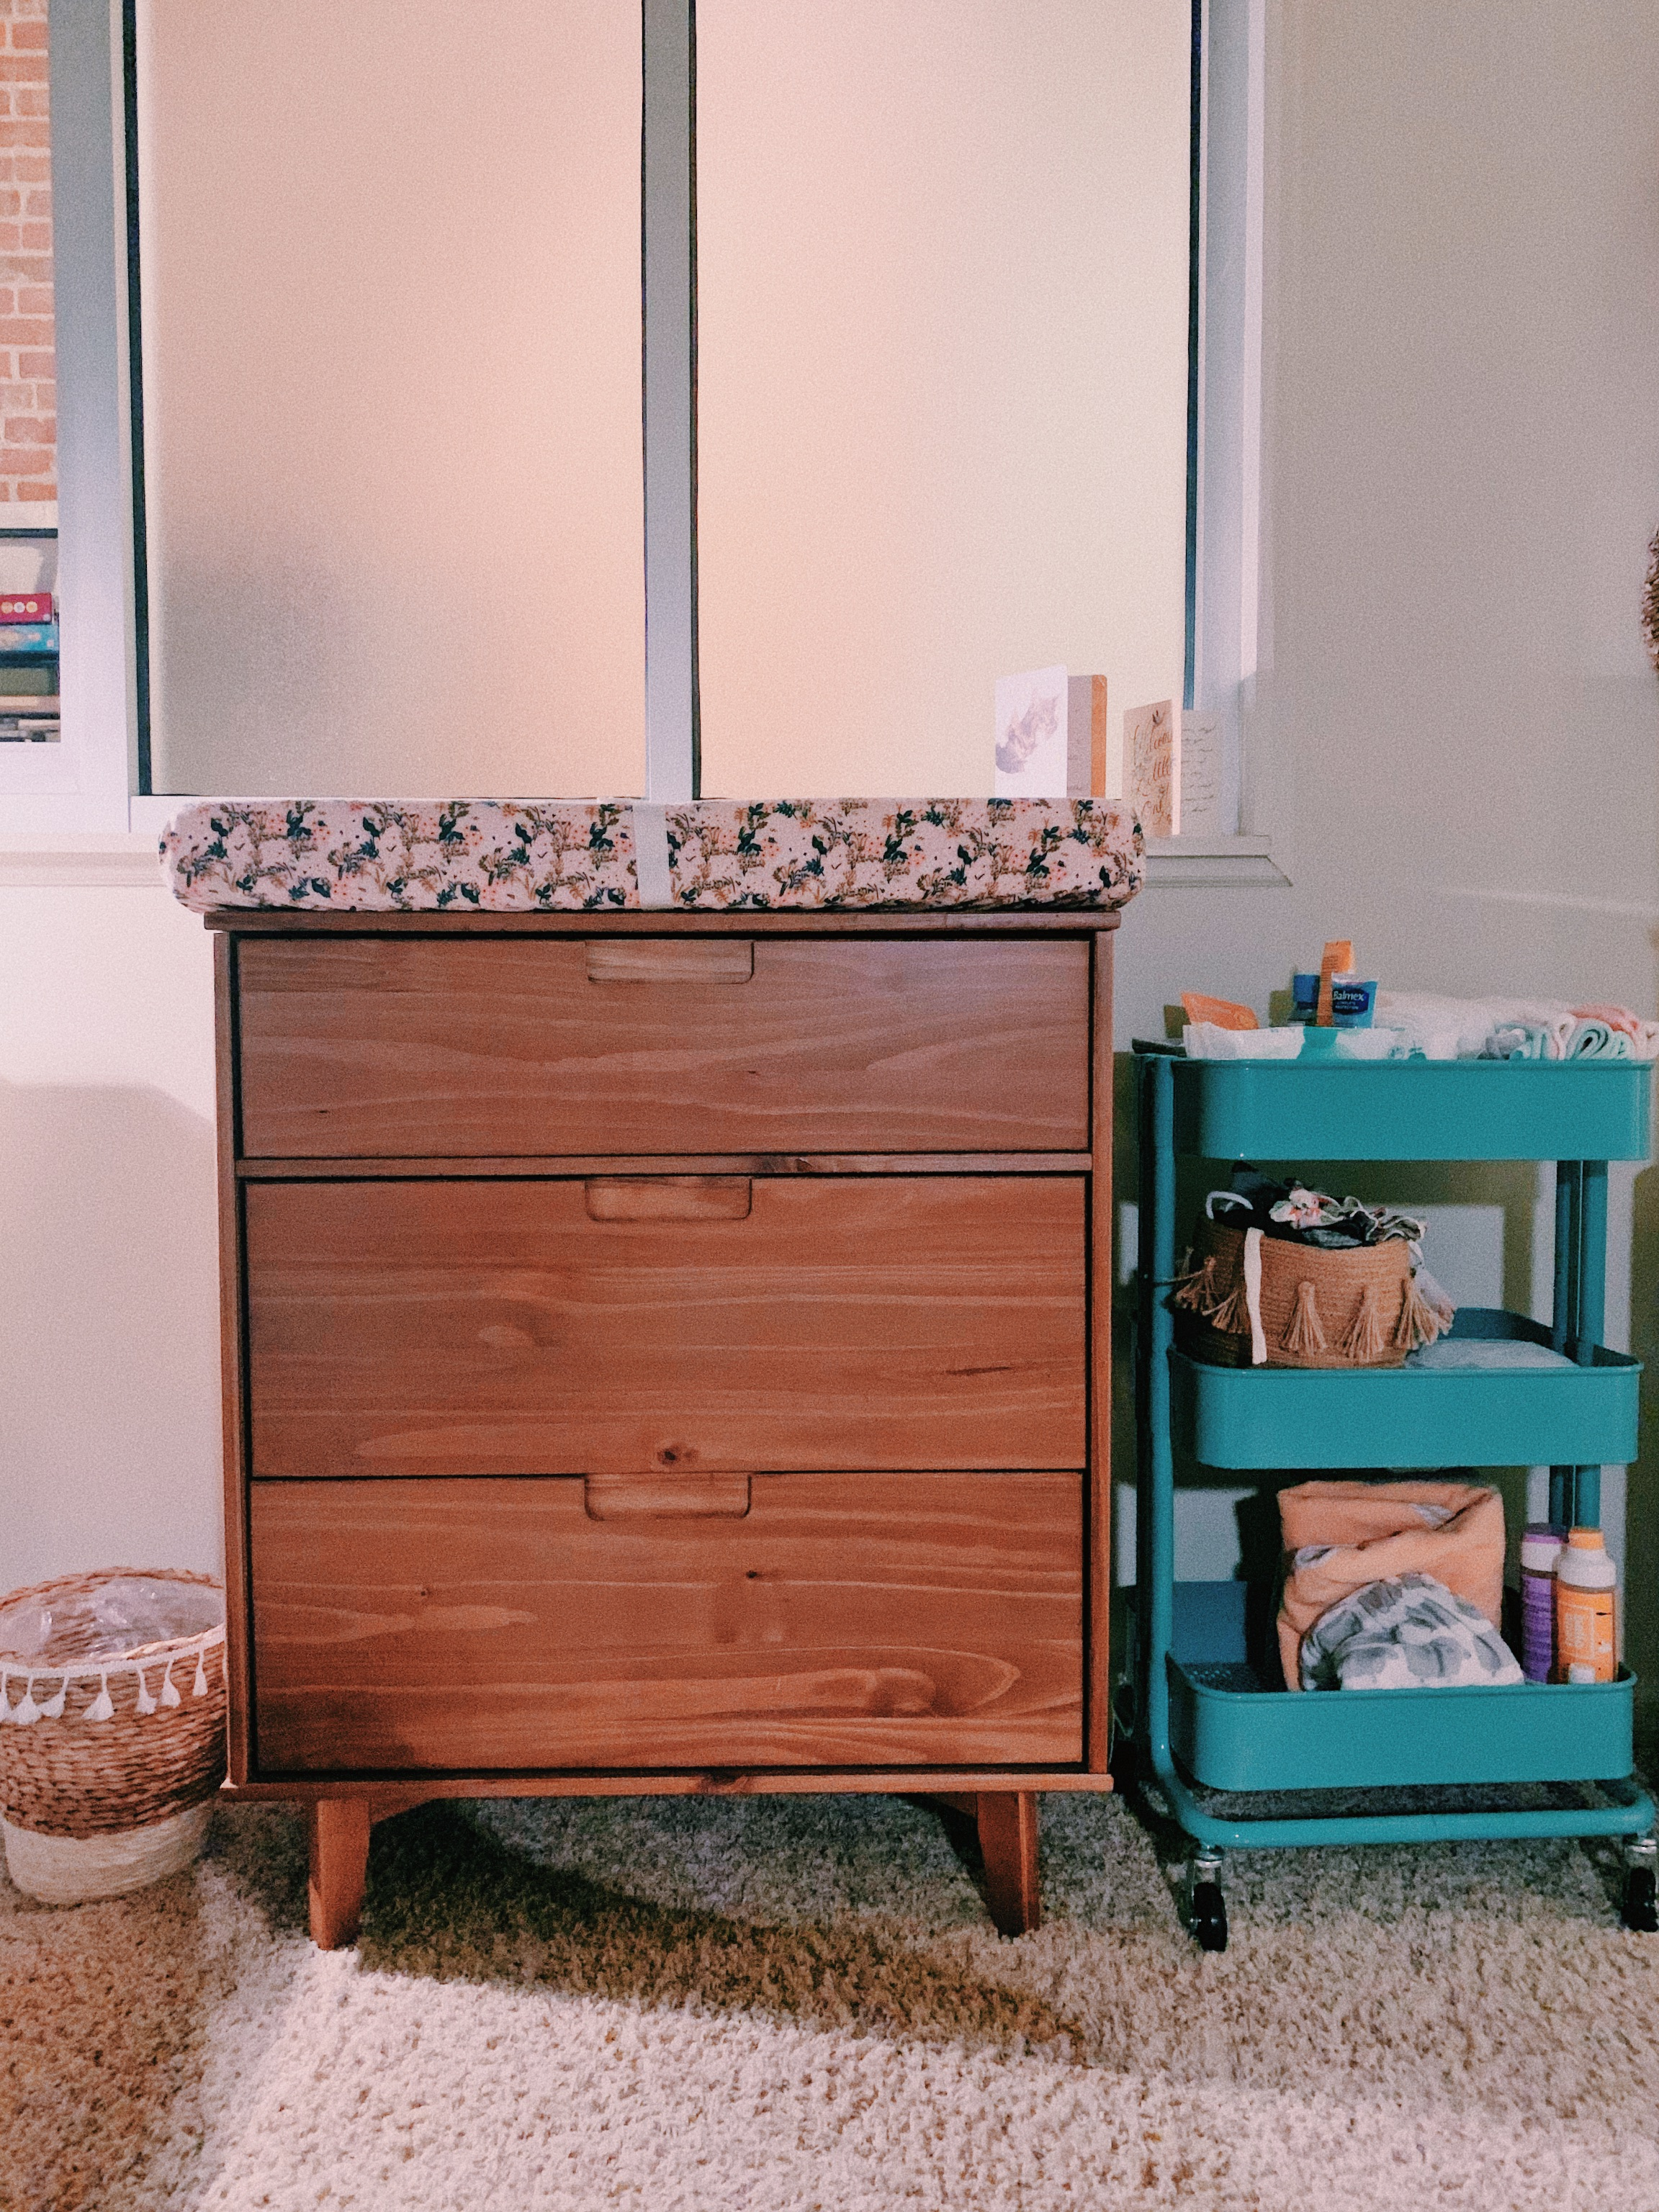 Because her room doubles as a guest room, we needed really small furniture to fit everything. I found this real wood, beautiful mid century dresser on Wayfair.